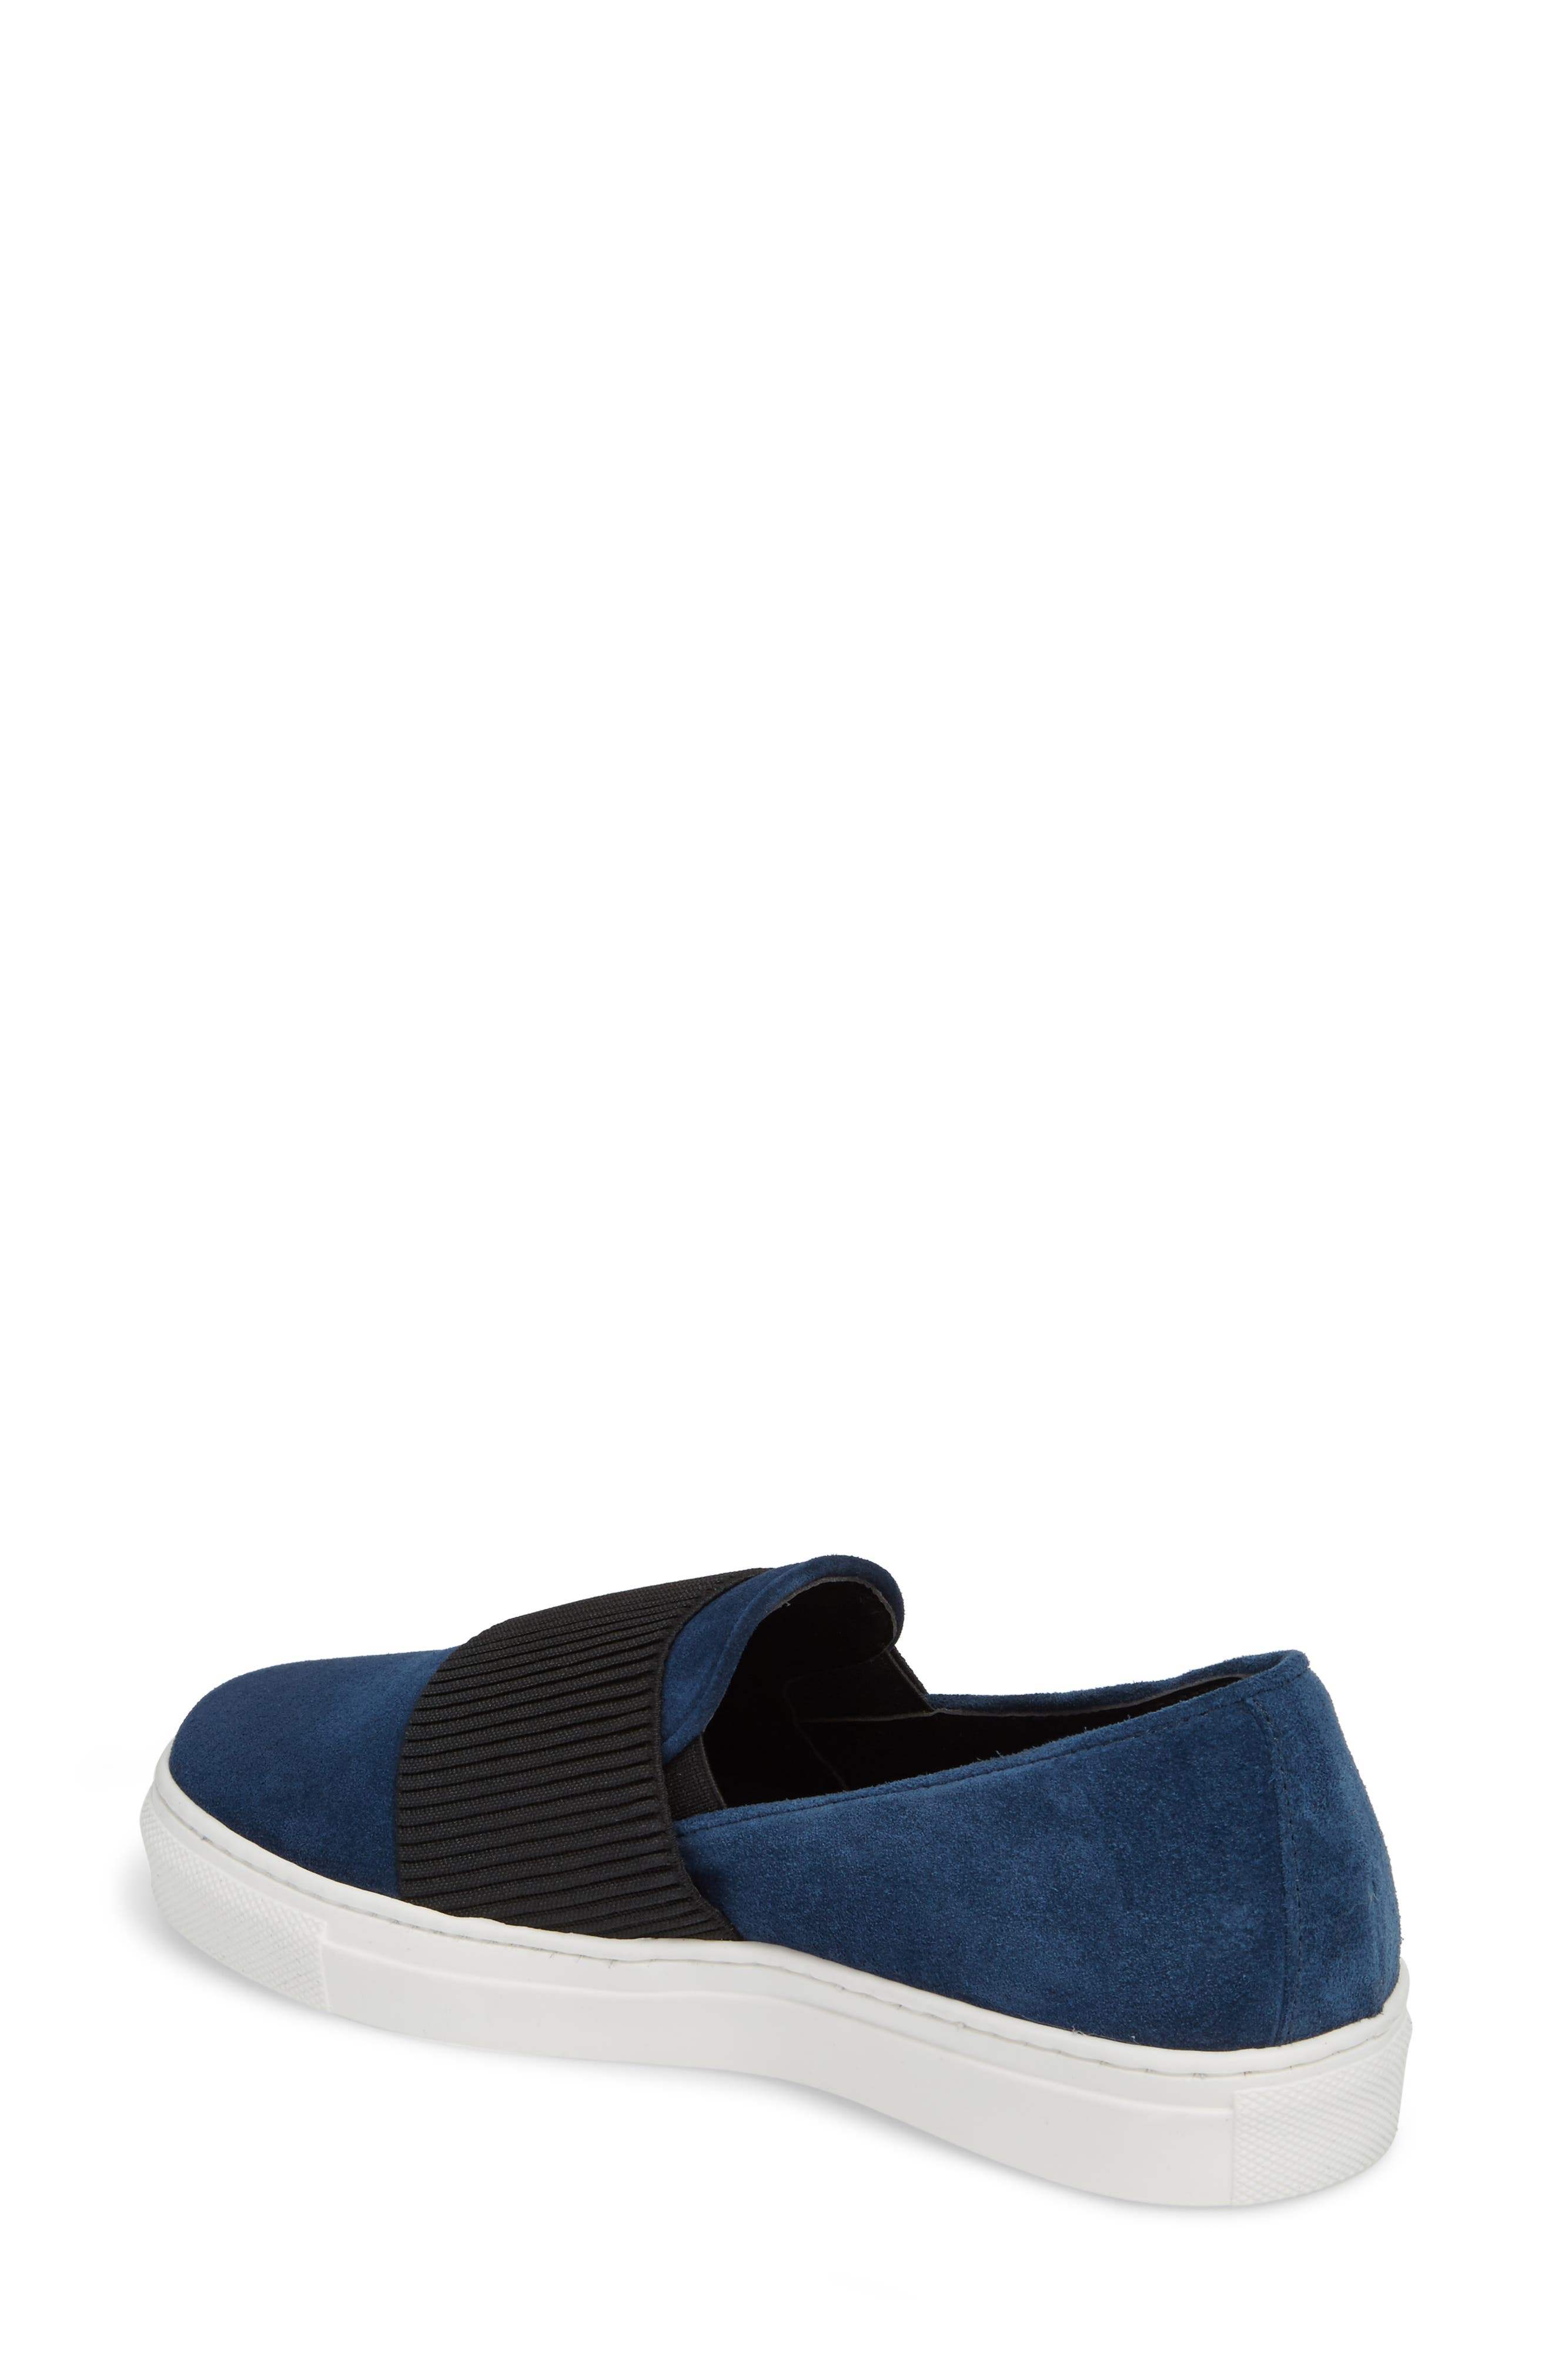 Otto Slip-On Sneaker,                             Alternate thumbnail 2, color,                             Navy Suede